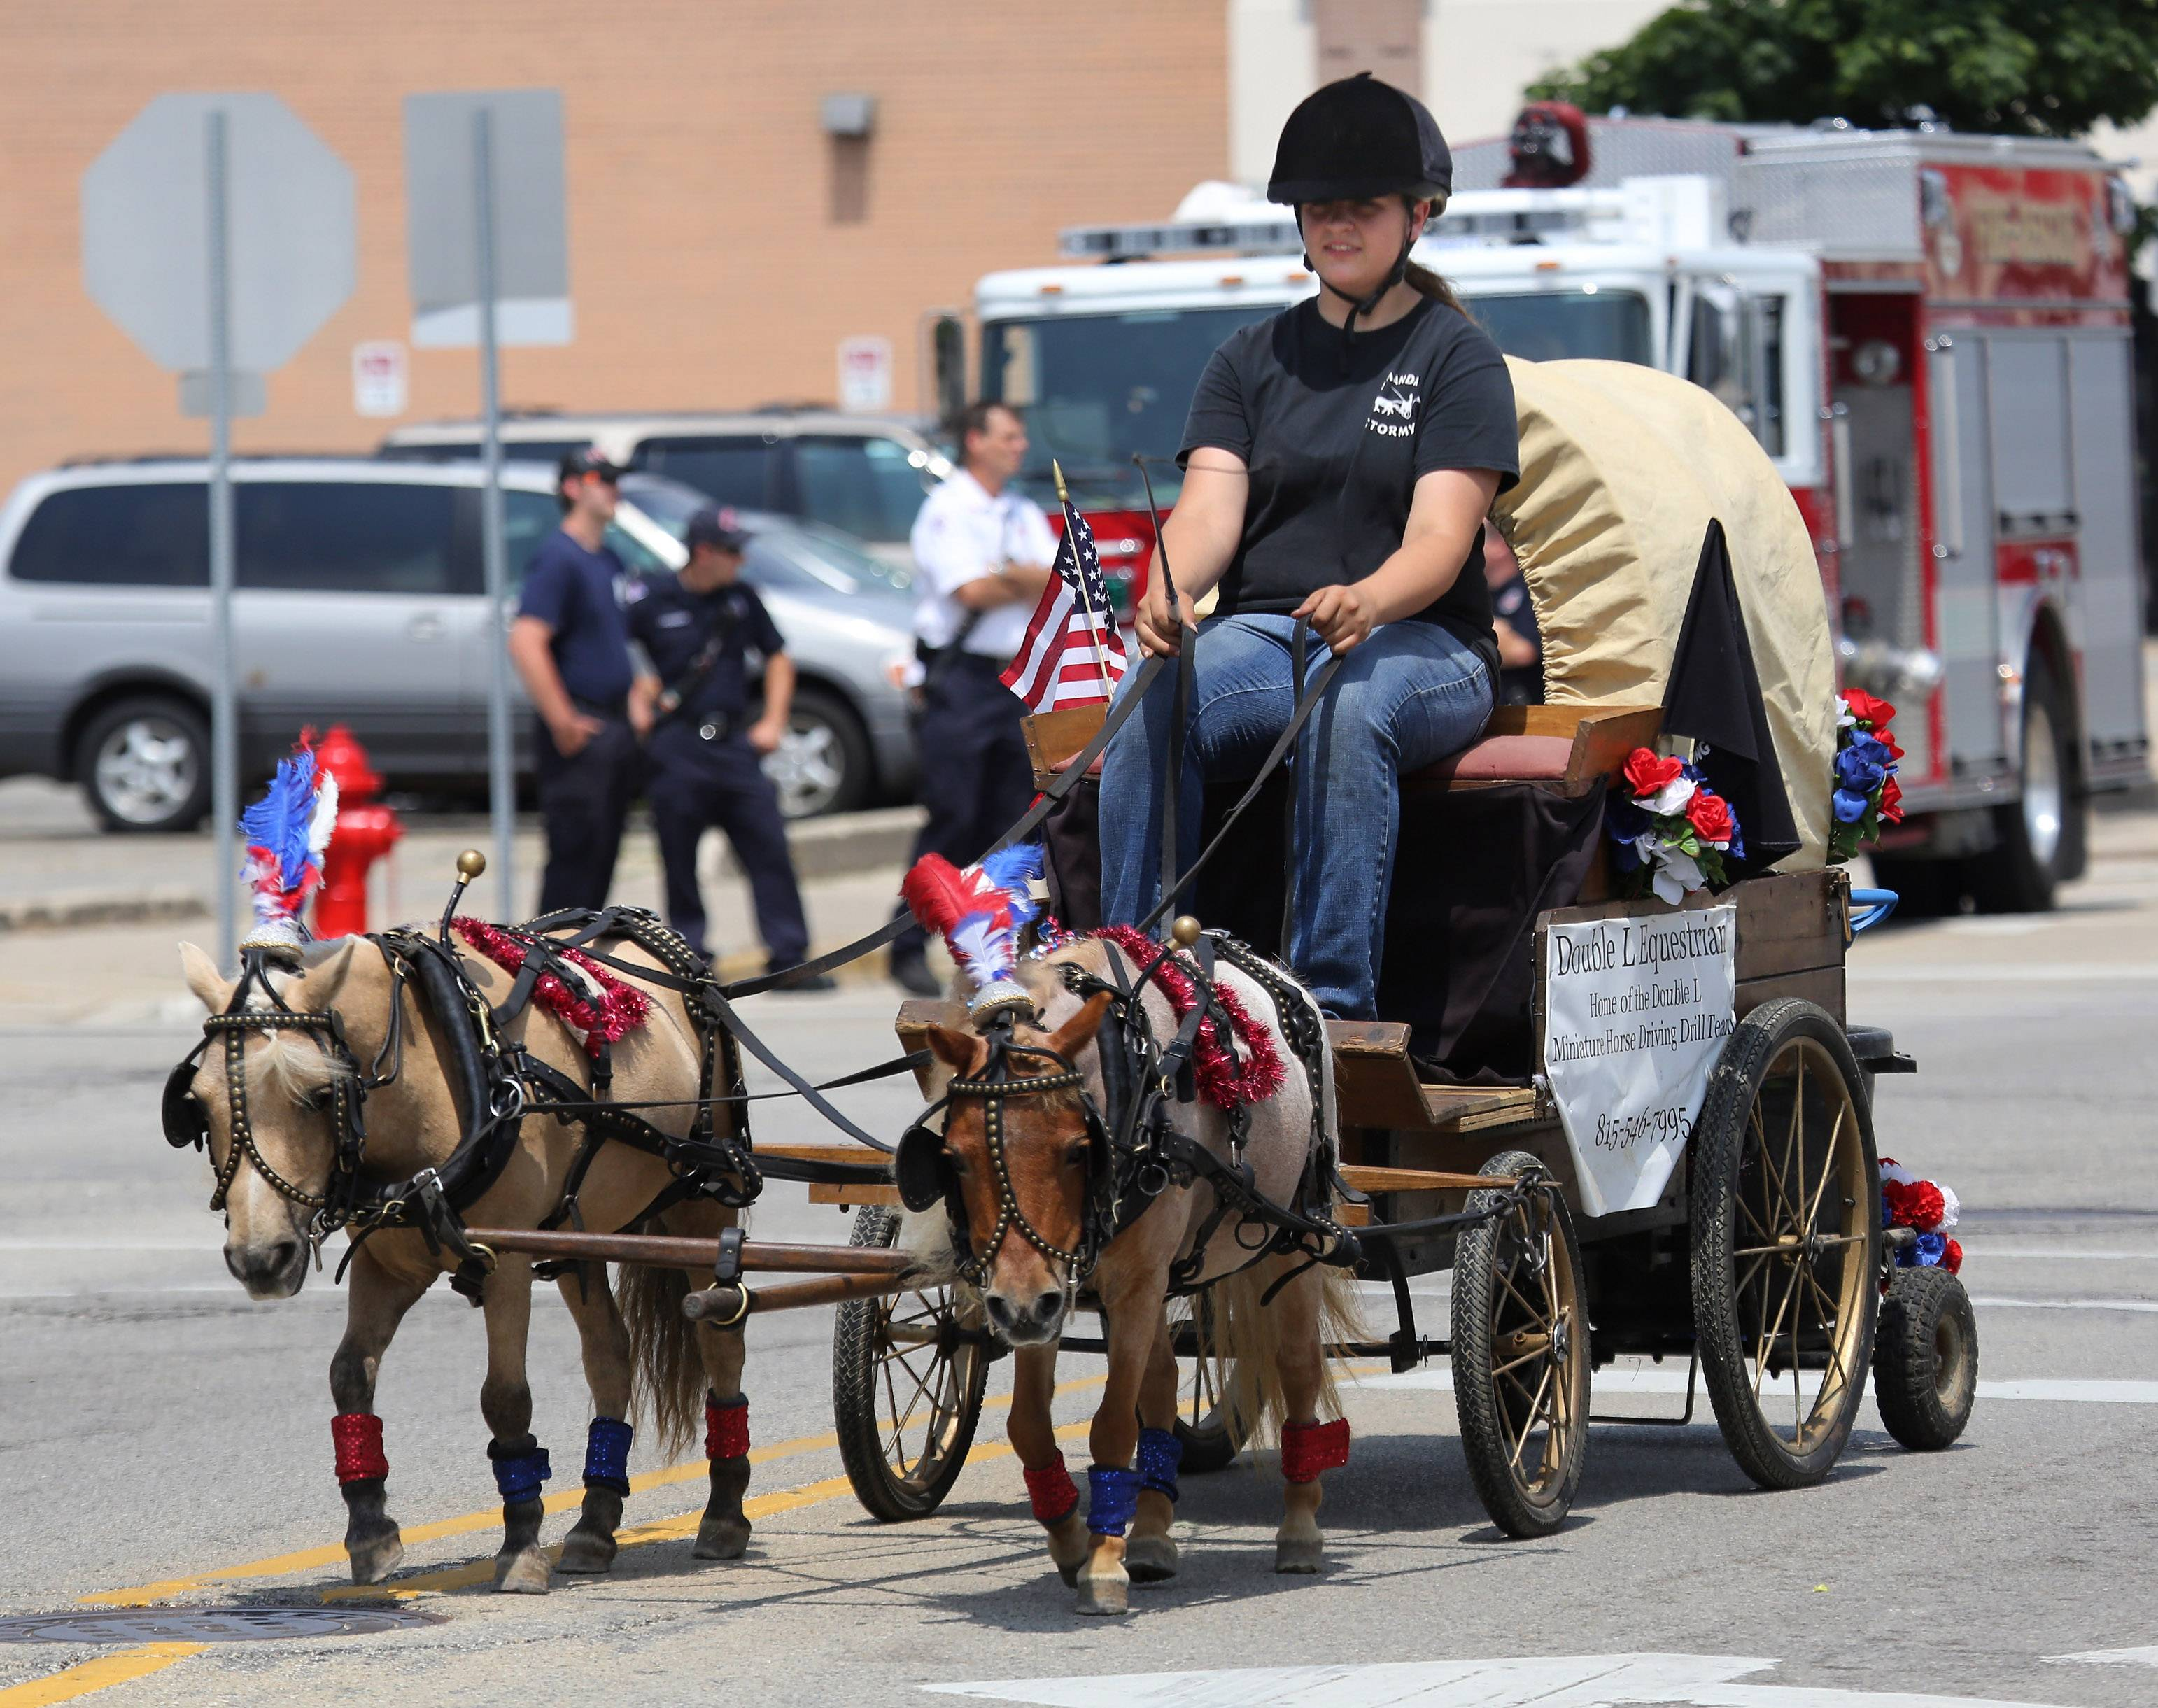 Amanda Wutz of Richmond rides a wagon Sunday with the Double L Equestrian Miniature Horse Driving Drill Team during the Mundelein Community Days Parade.